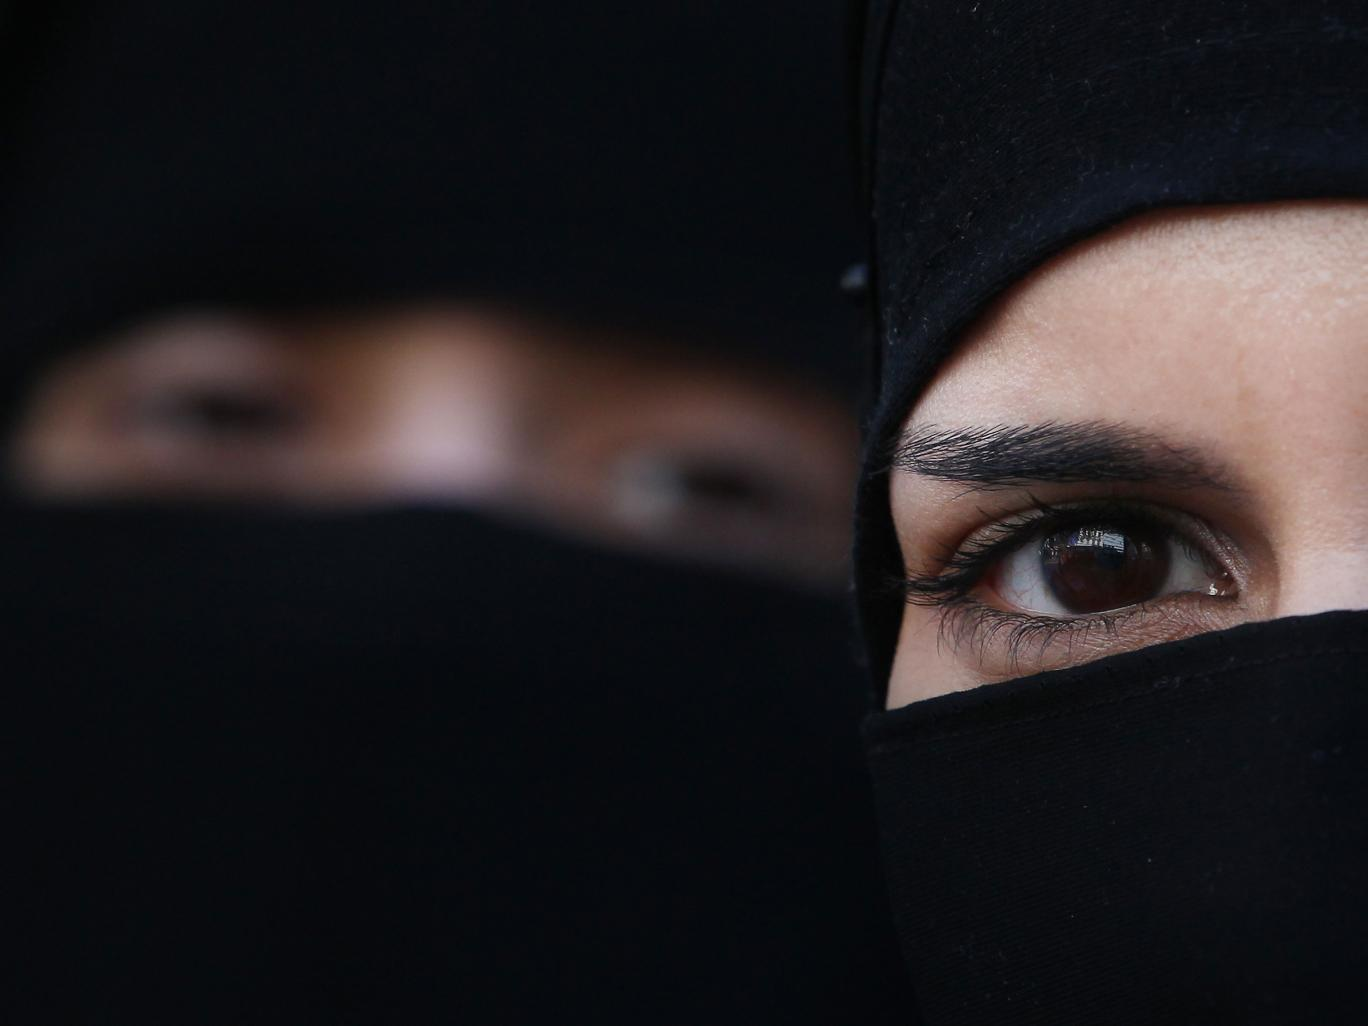 Many ex-Muslims in Britain face ostracisation and isolation from their communities, while some are subject to physical and psychological abuse Getty